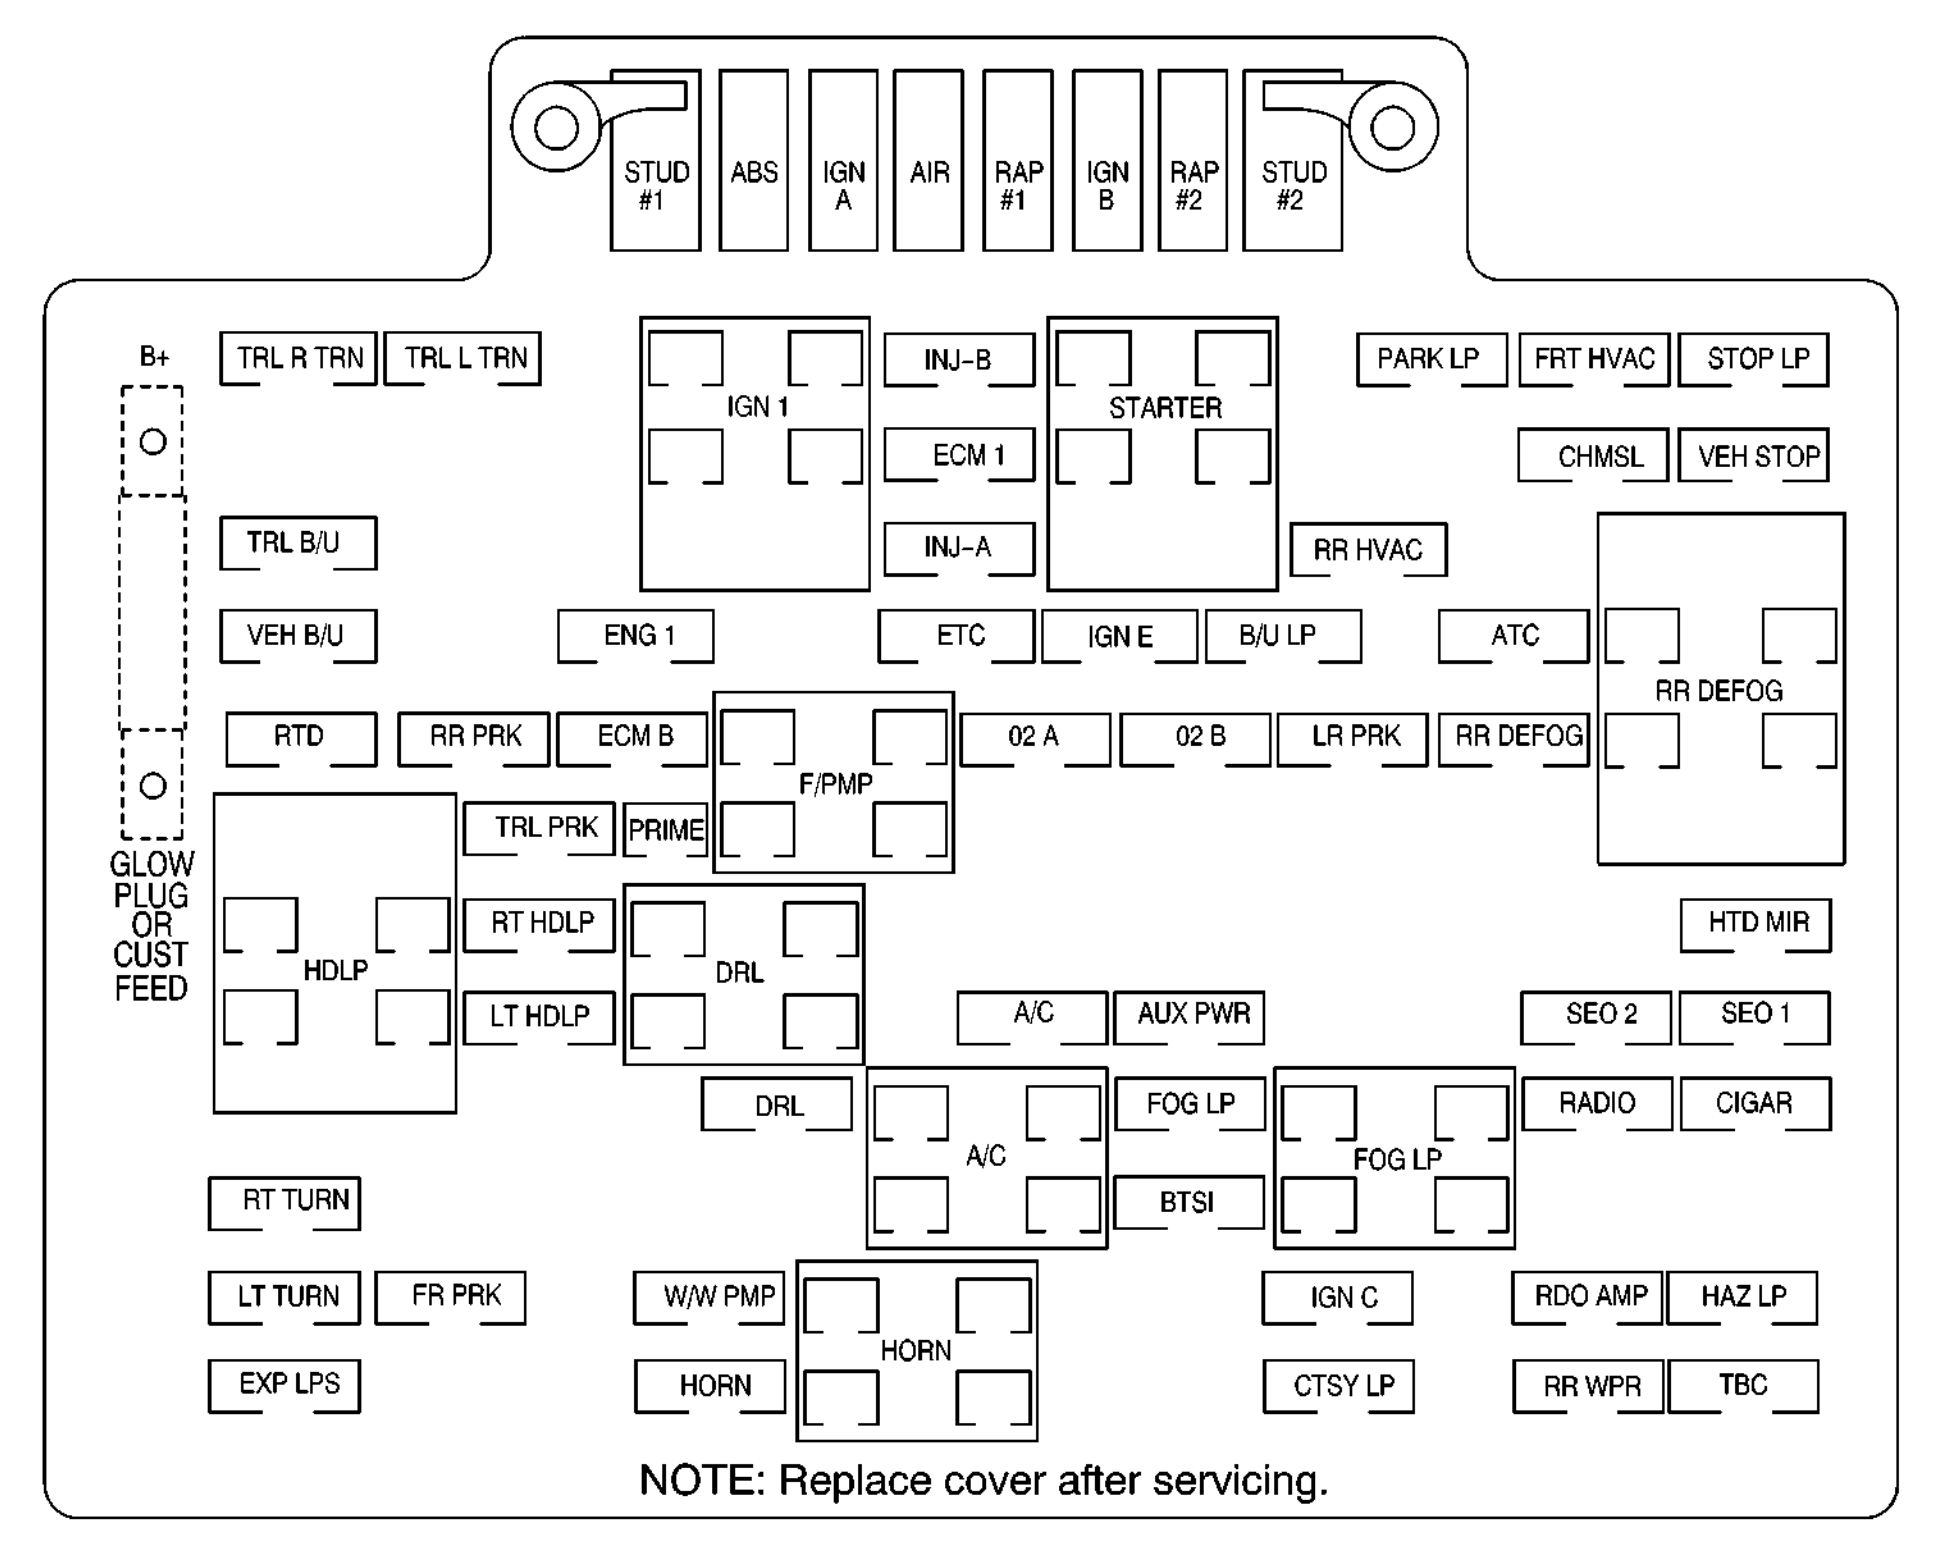 Chevrolet Suburban 2002 Fuse Box Diagram Carknowledge